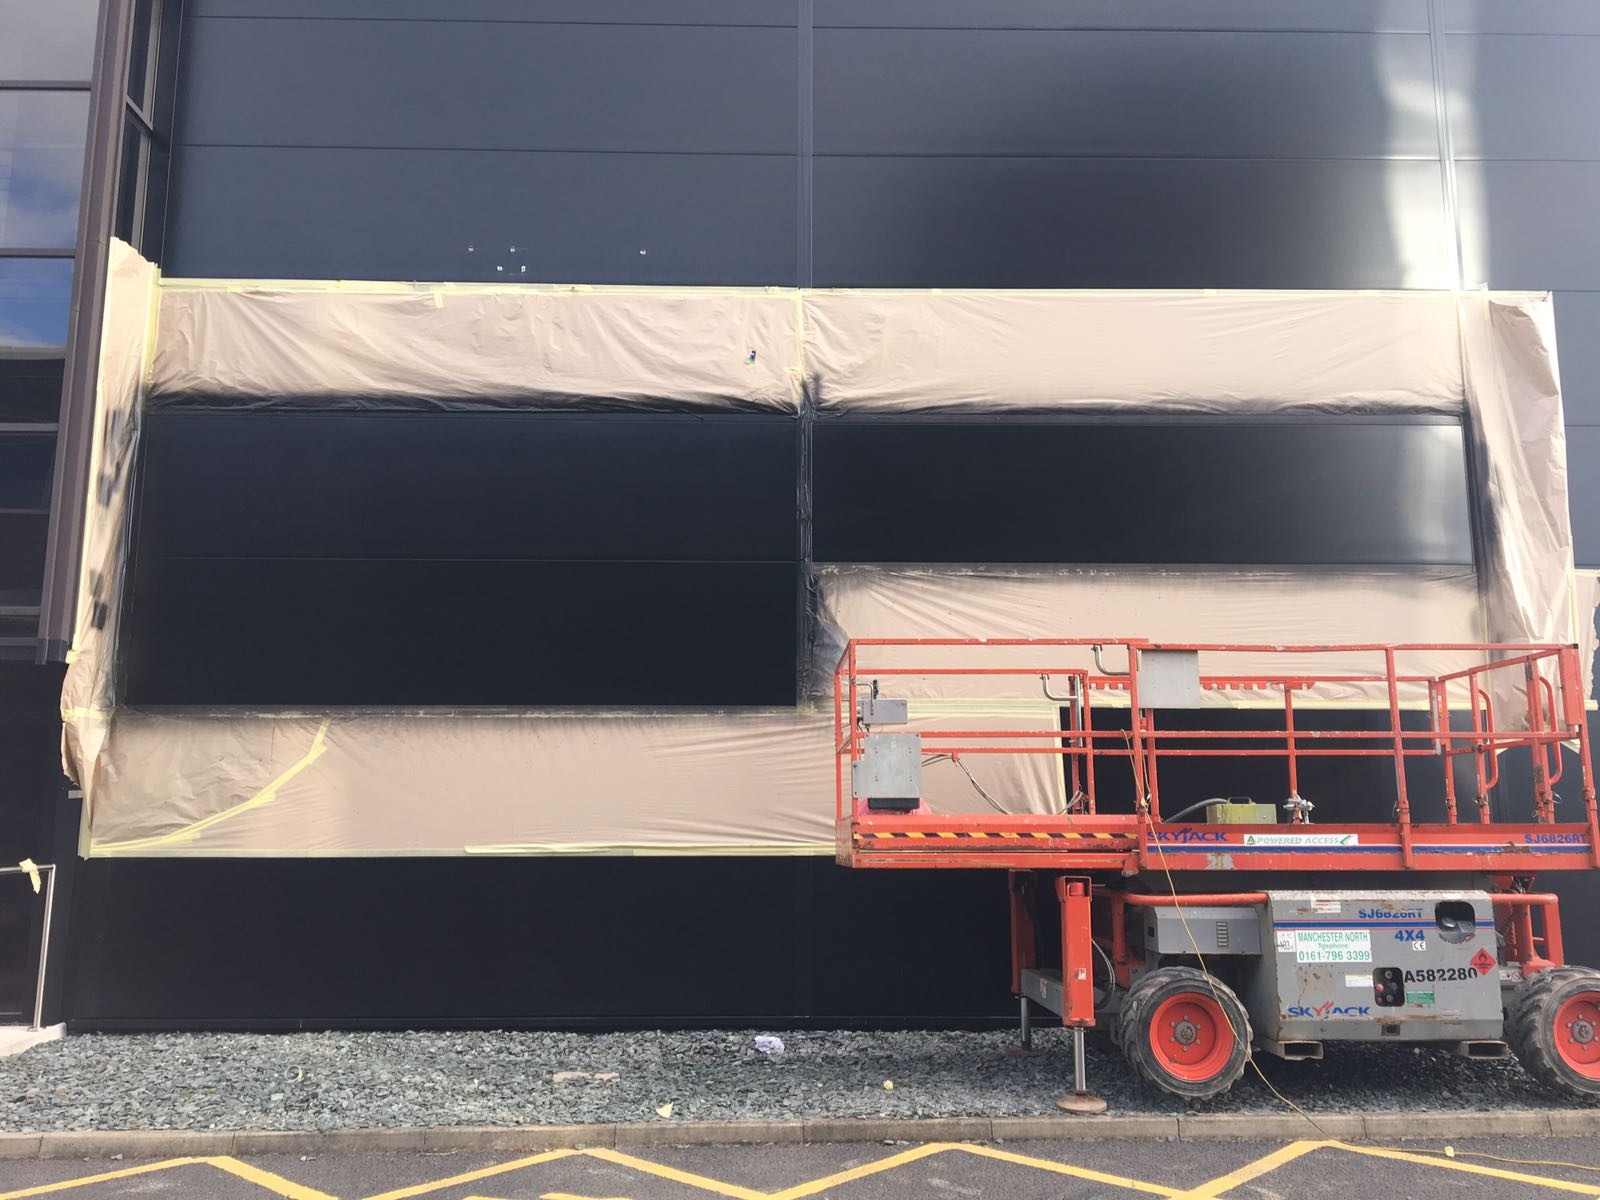 Adidas signage masked & Arcelor panels being repaired